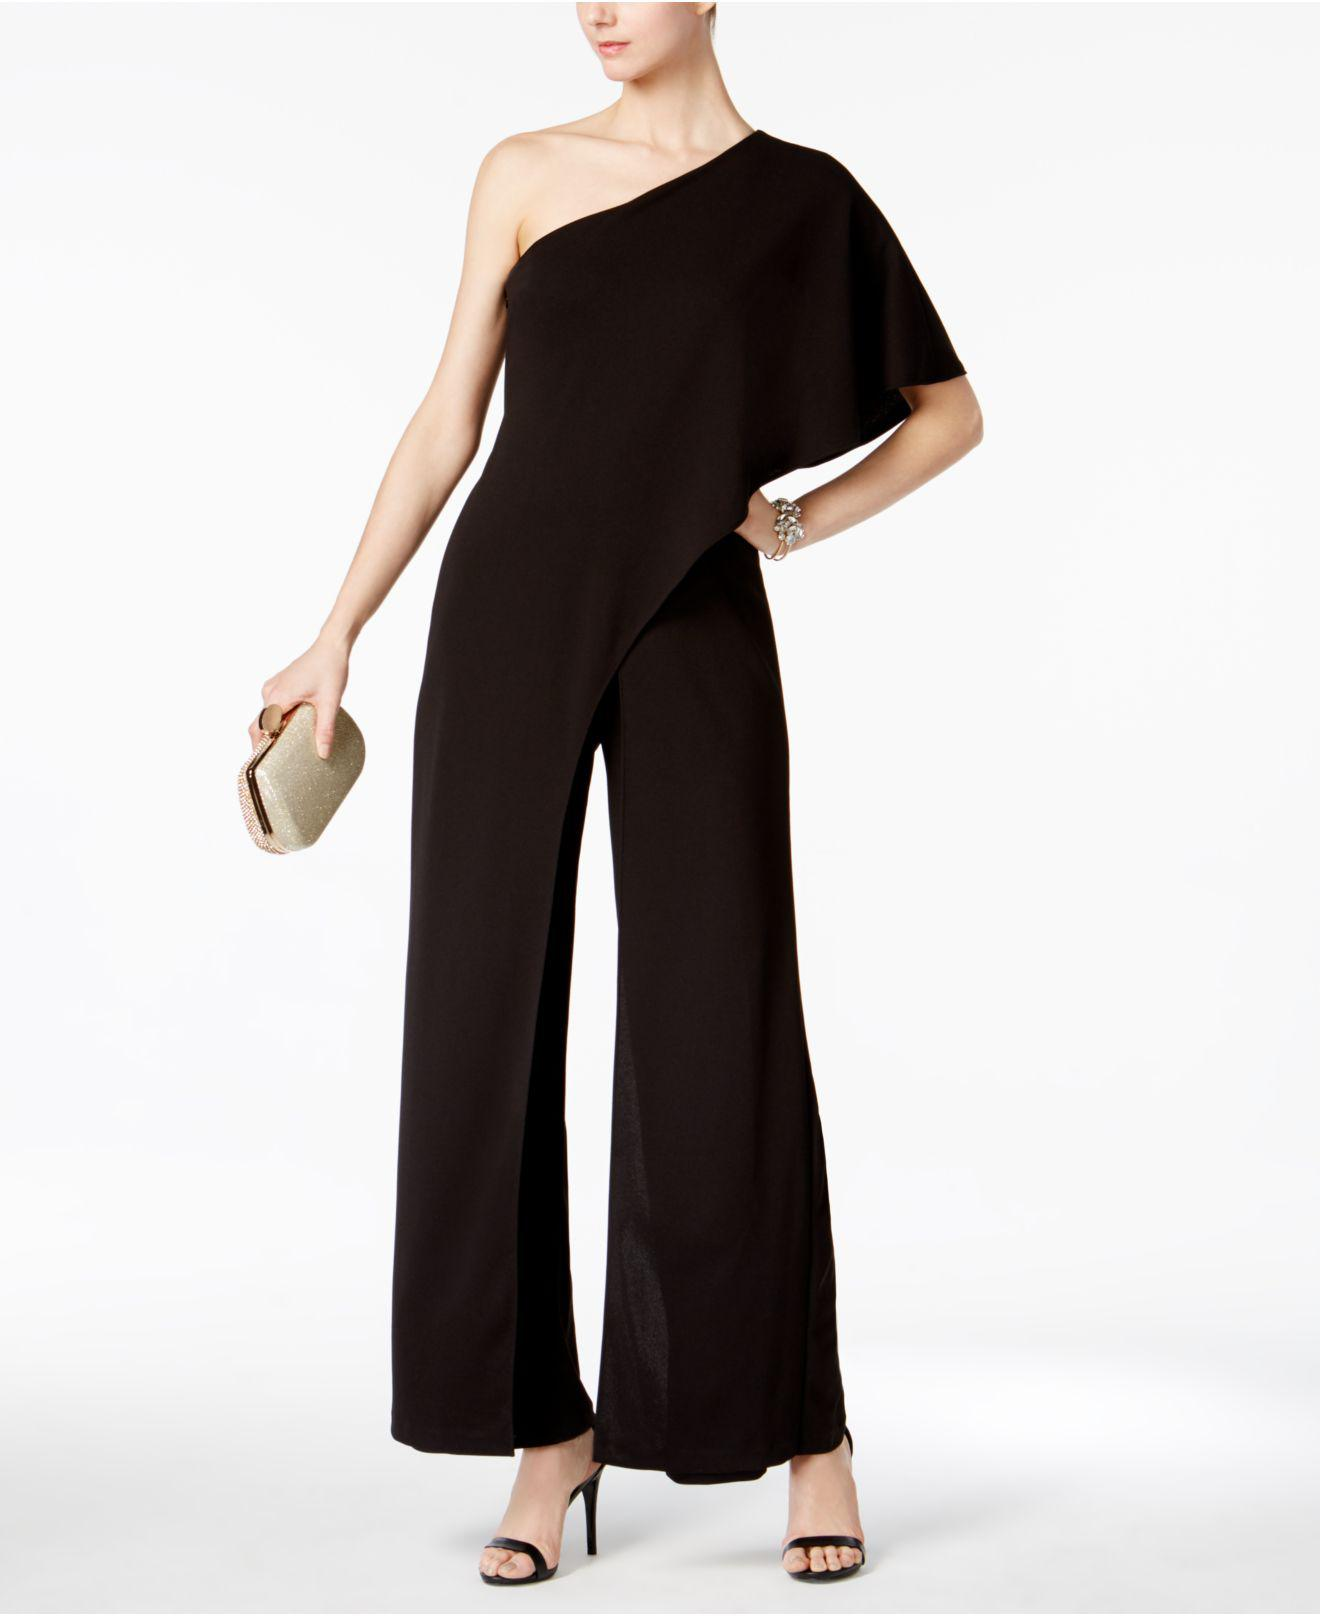 8f5b7020b2a Lyst - Adrianna Papell Petite Draped One-shoulder Jumpsuit in Black